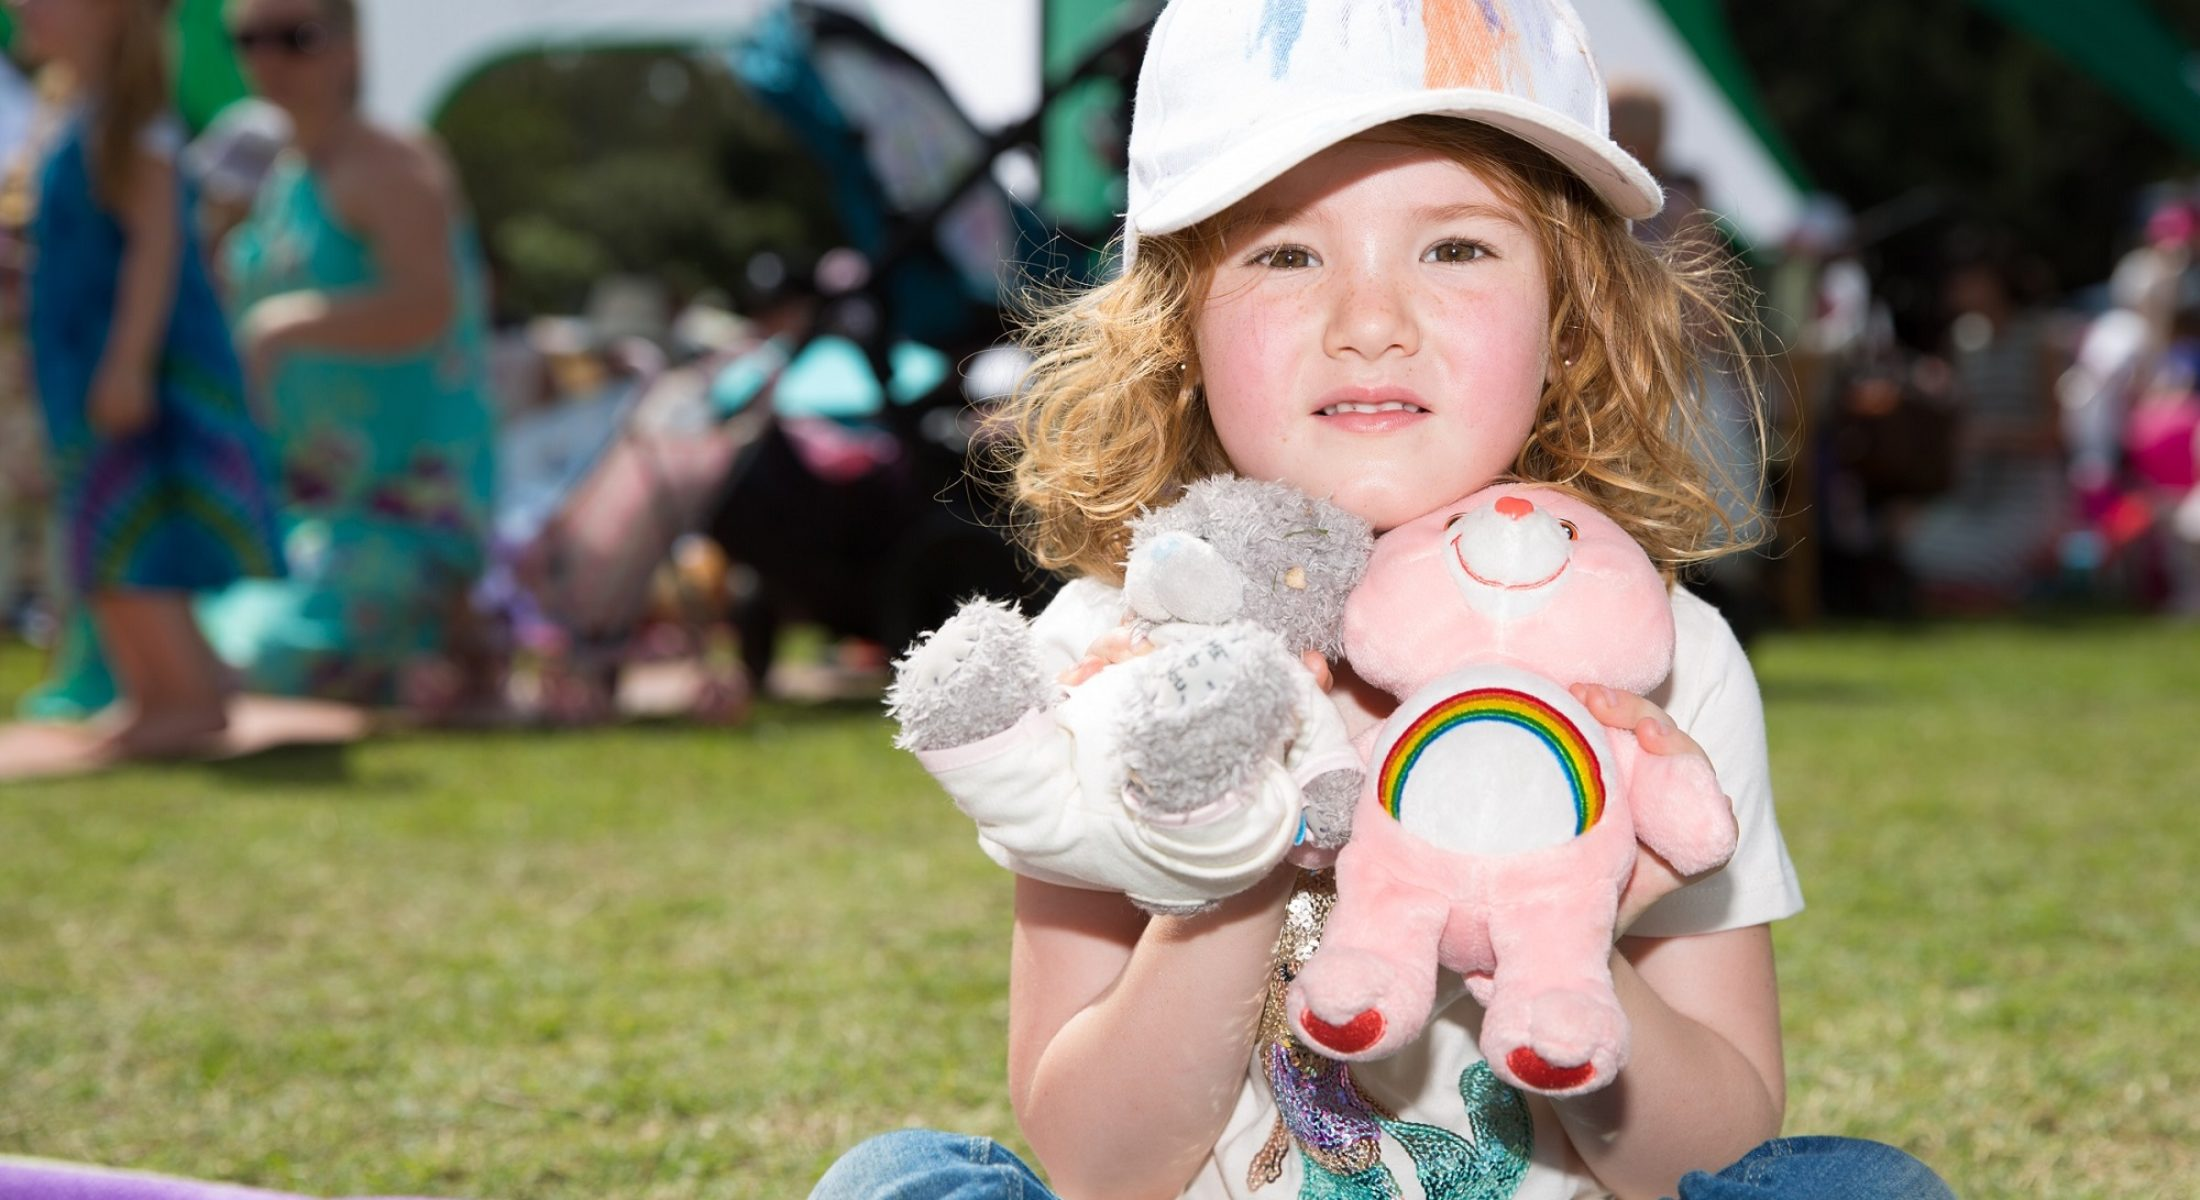 Teddy Bears Picnic Kid With Bears Moreton Bay Region